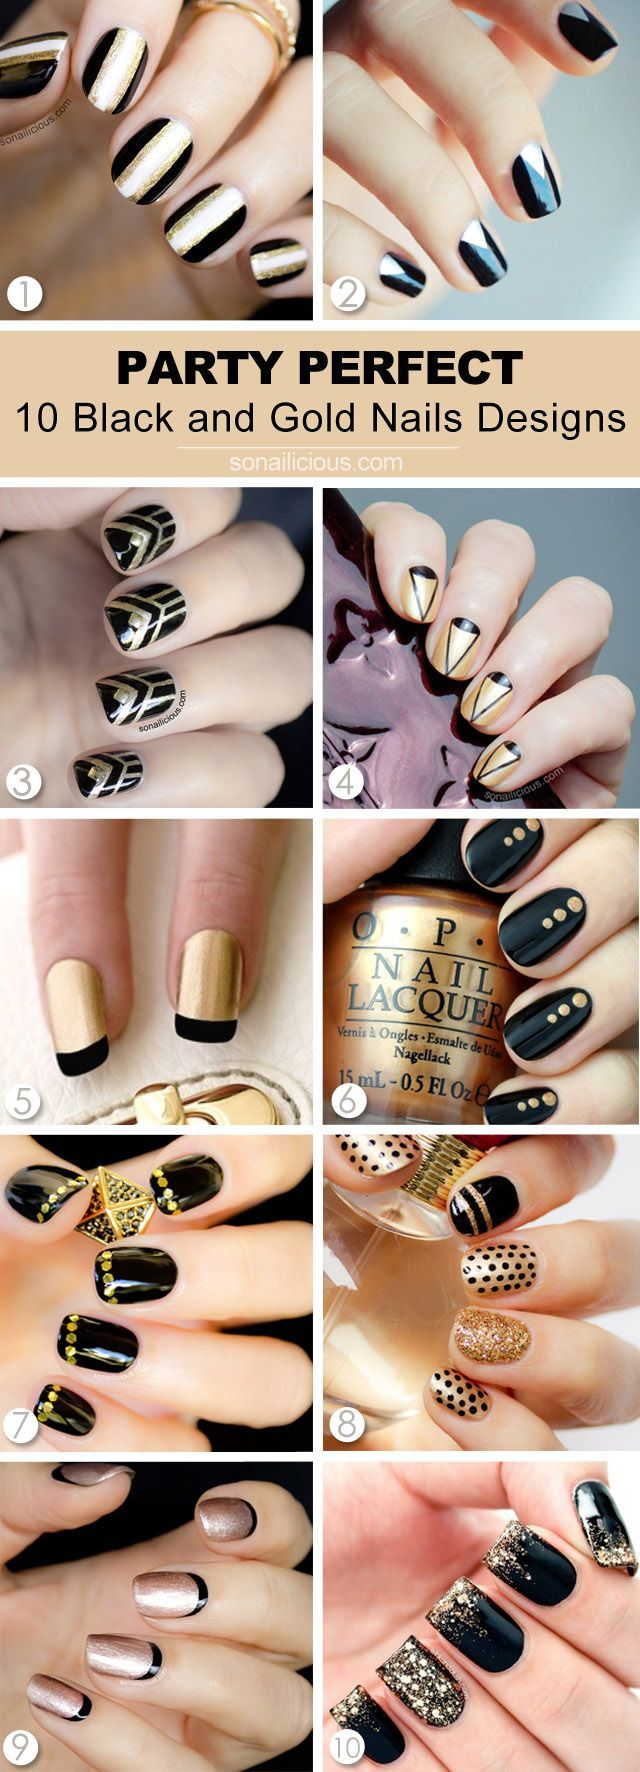 10-BEST-BLACK-AND-GOLD-NAIL-DESIGNS.jpg 640×1.772 píxeles